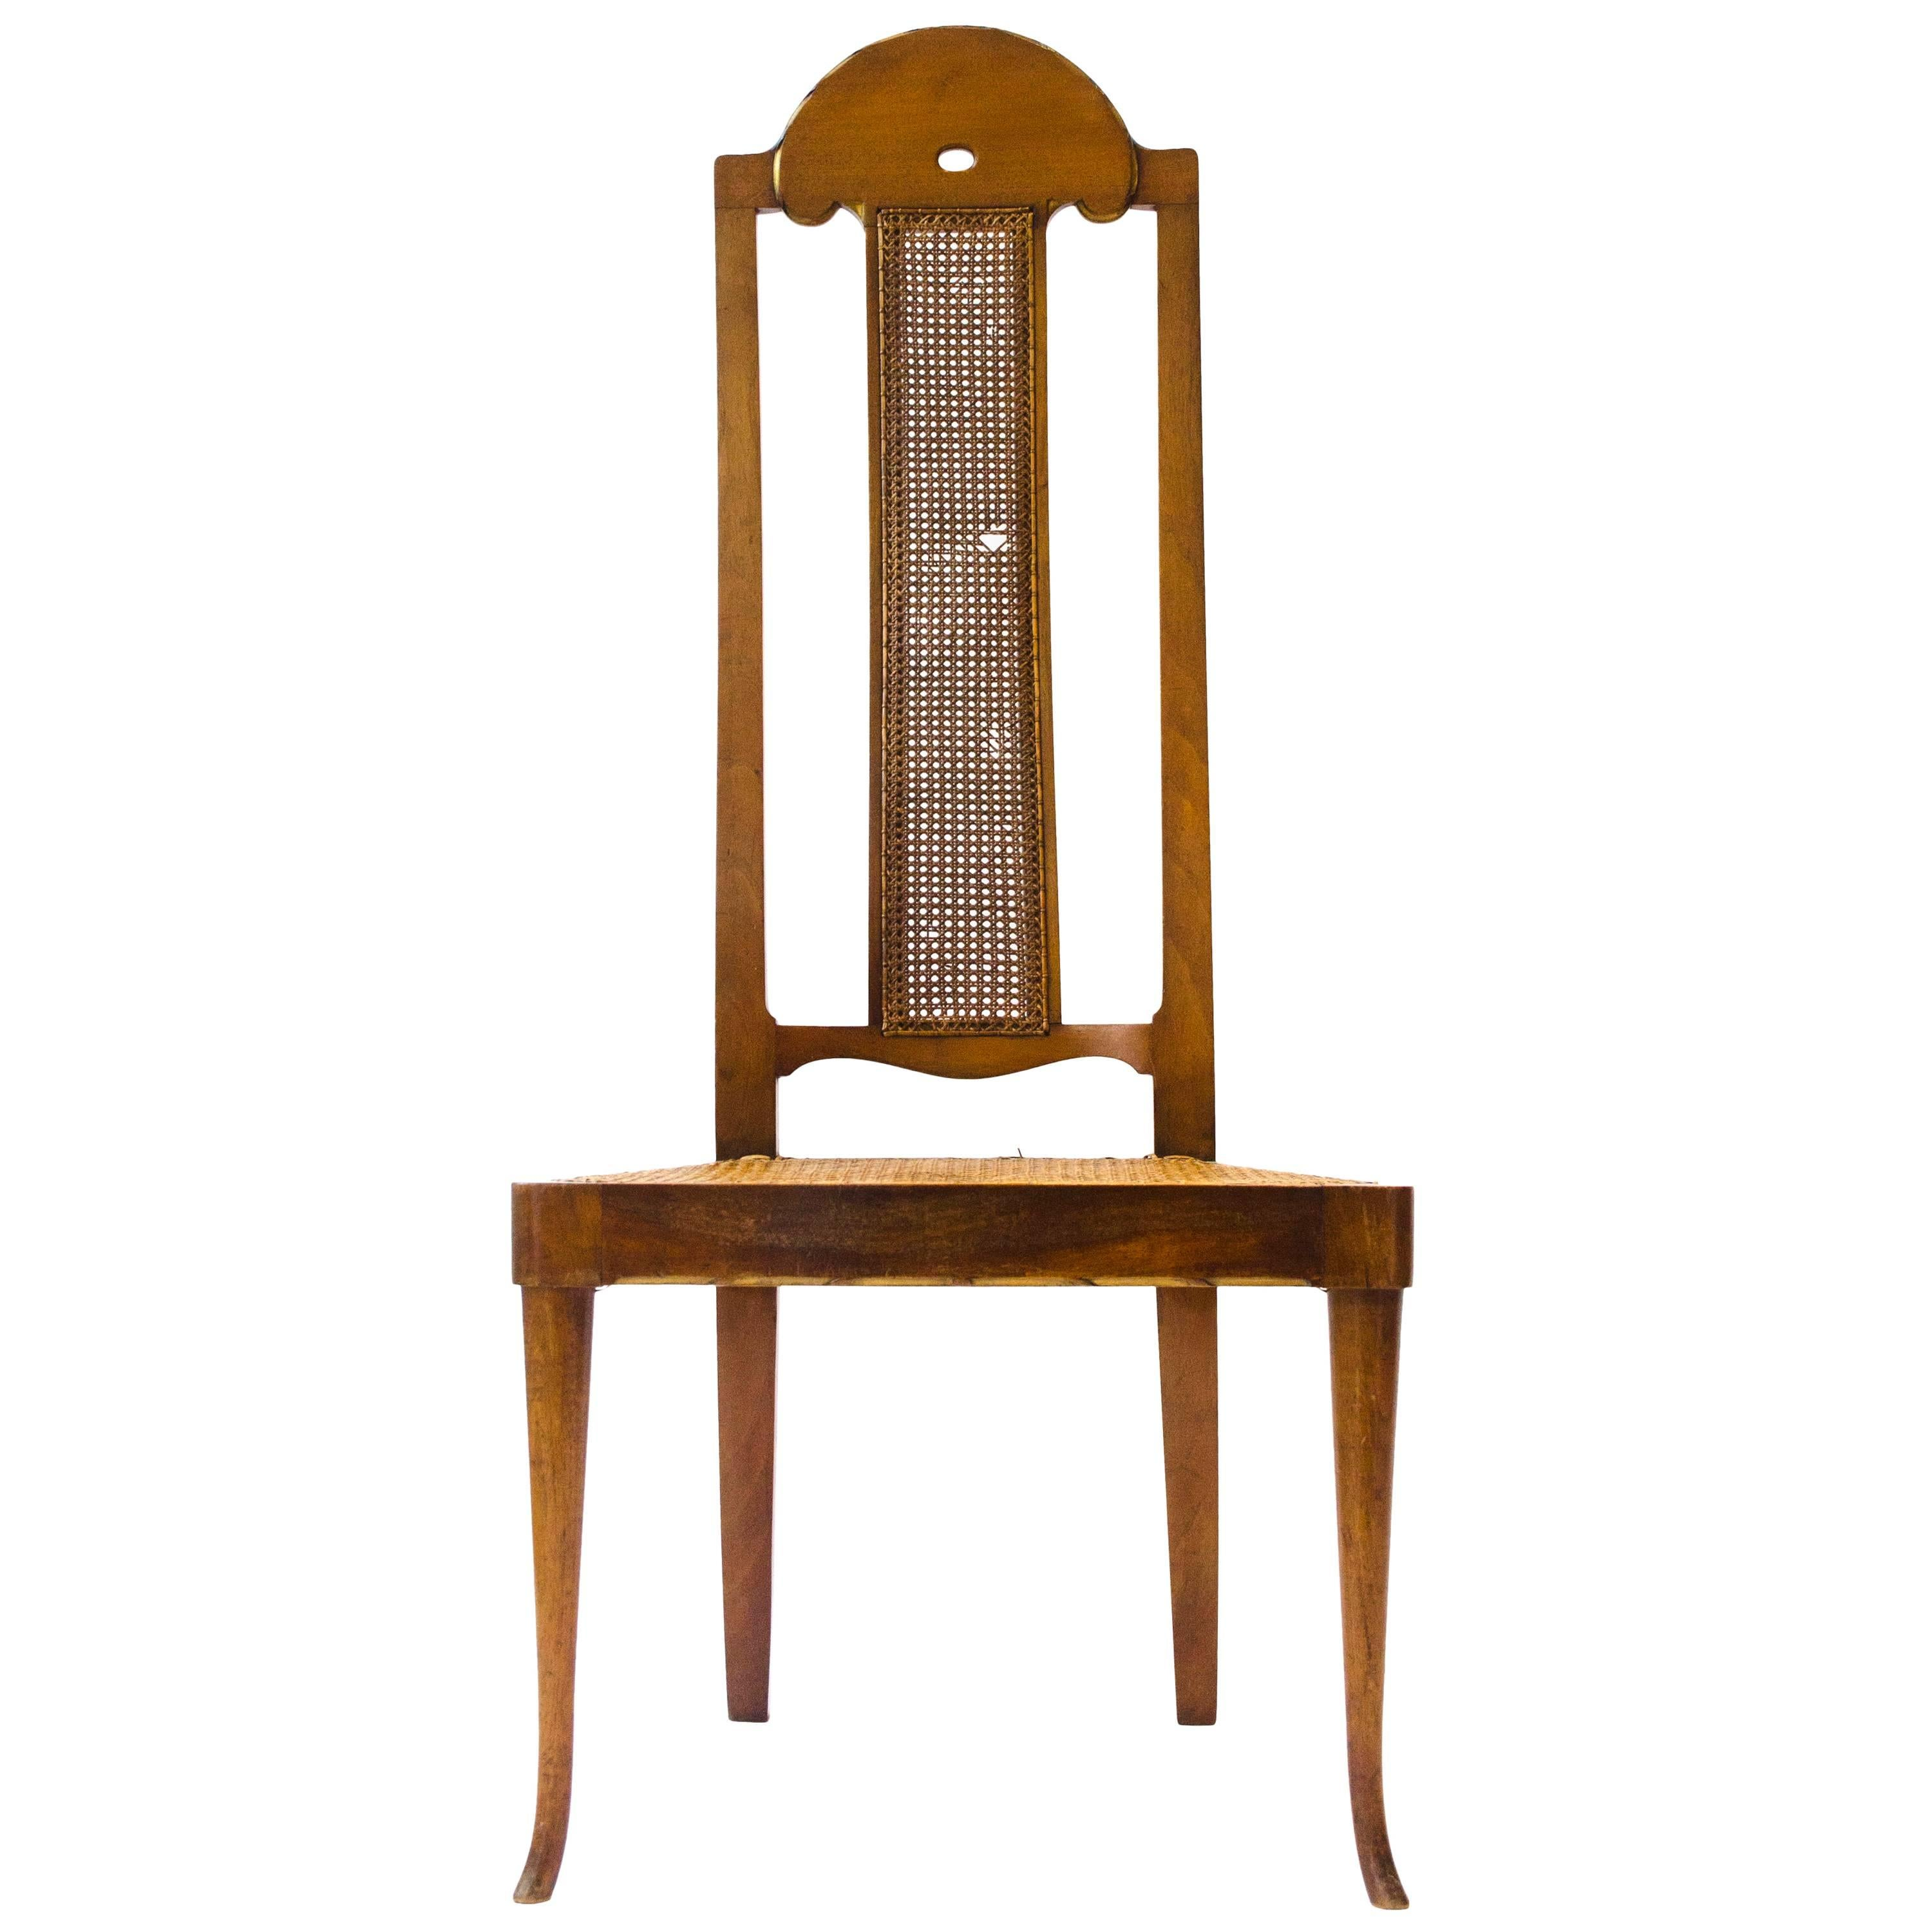 George Walton. A Rare Arts & Crafts Philippines Cane Chair with Serpentine Back